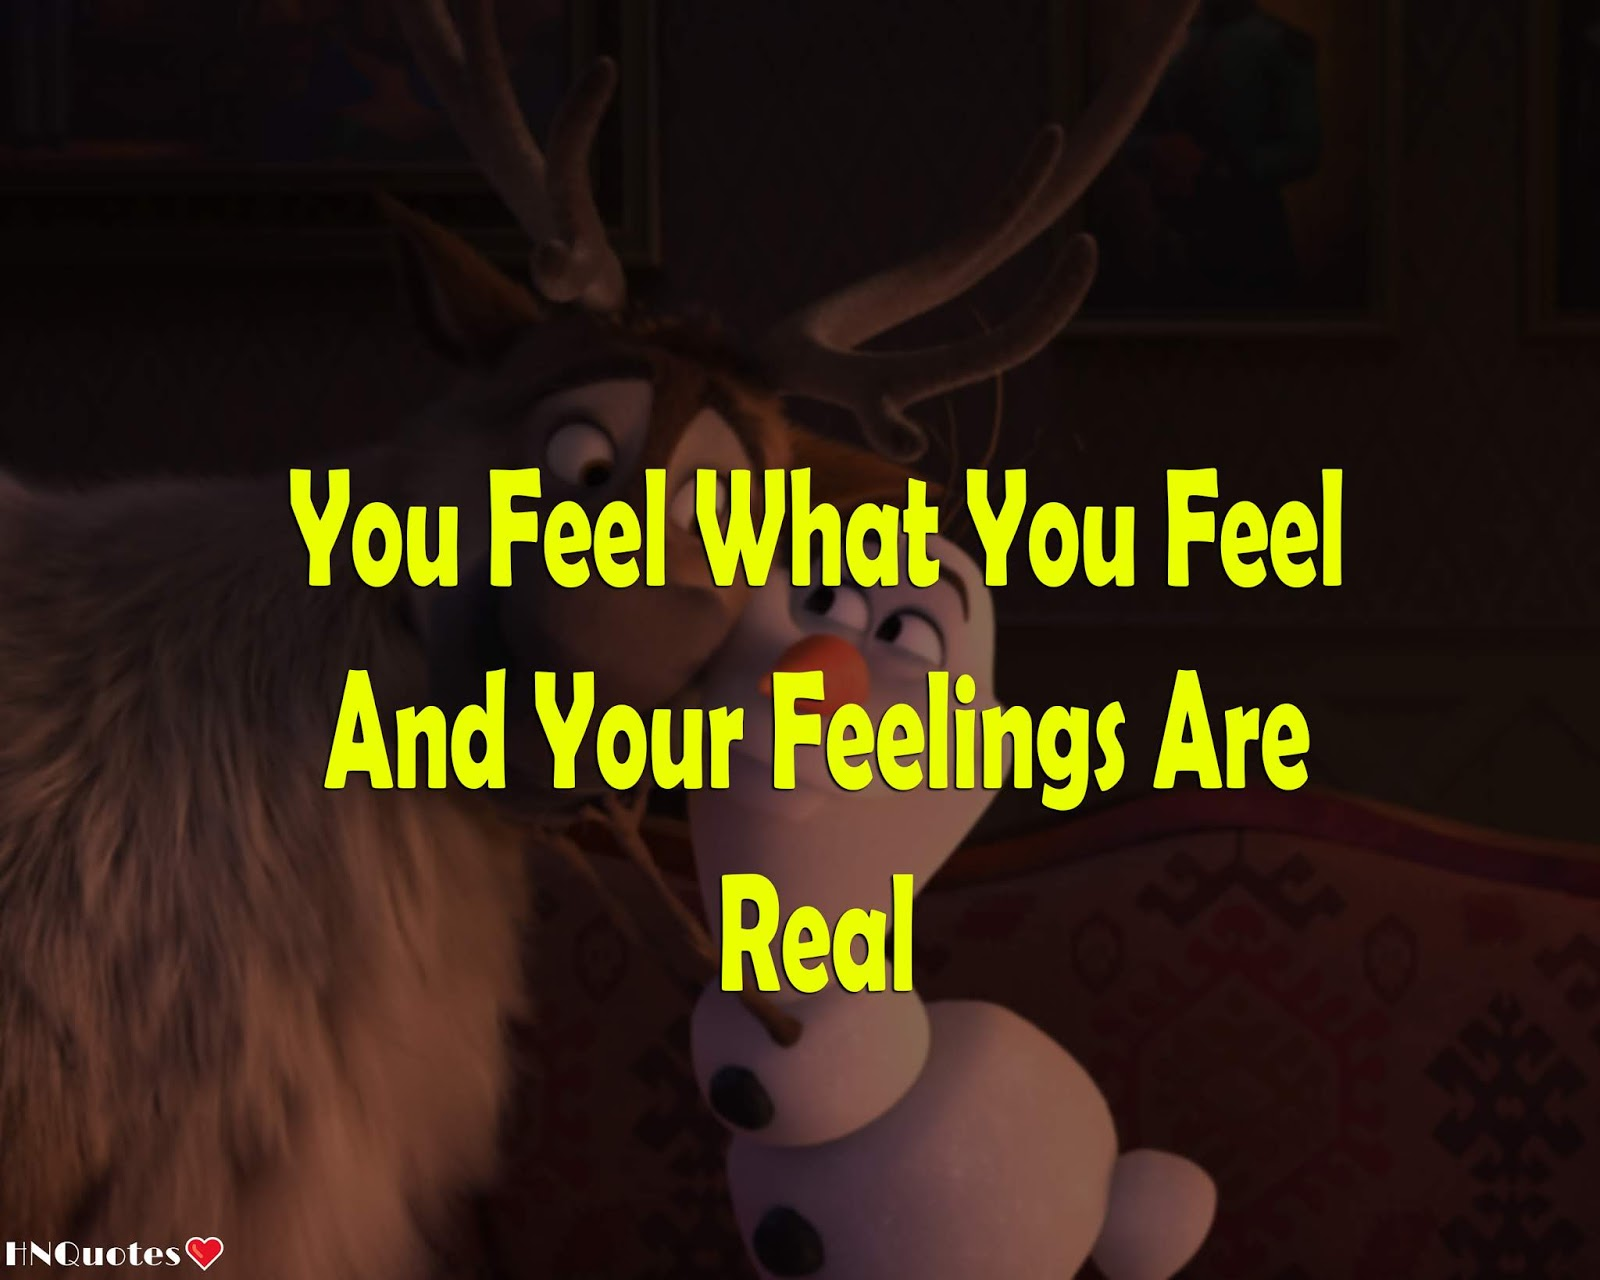 Frozen-2-Movie-Disney-Best-Quotes-Funny-Motivational-Love-Beautiful-Lines-3-[HNQuotes]